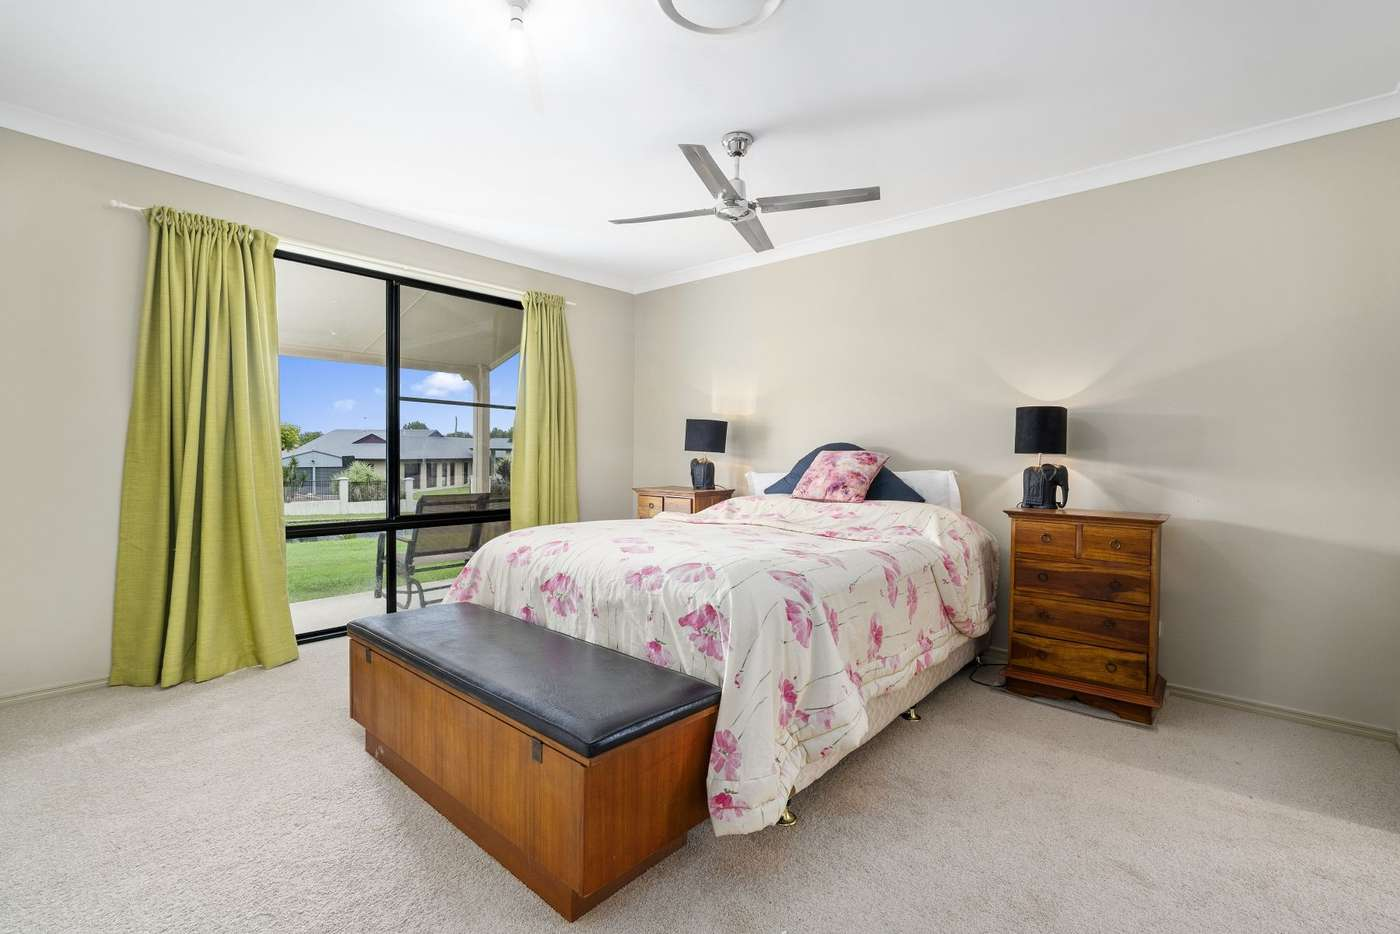 Sixth view of Homely house listing, 2-8 Remor Court, Elimbah QLD 4516